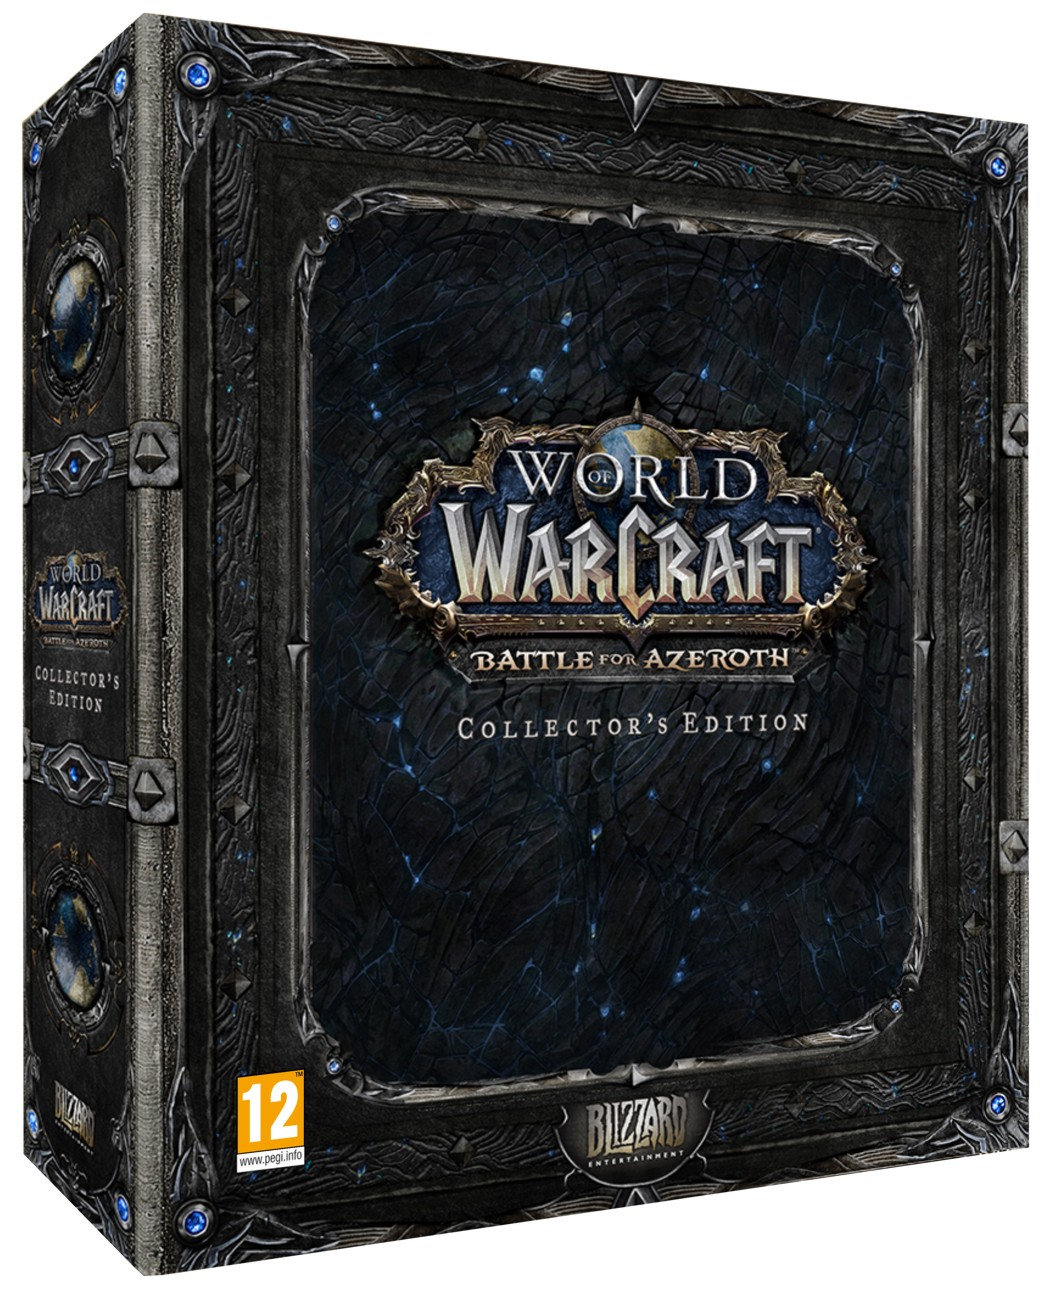 World of Warcraft: Battle for Azeroth Collector's Edition - PC